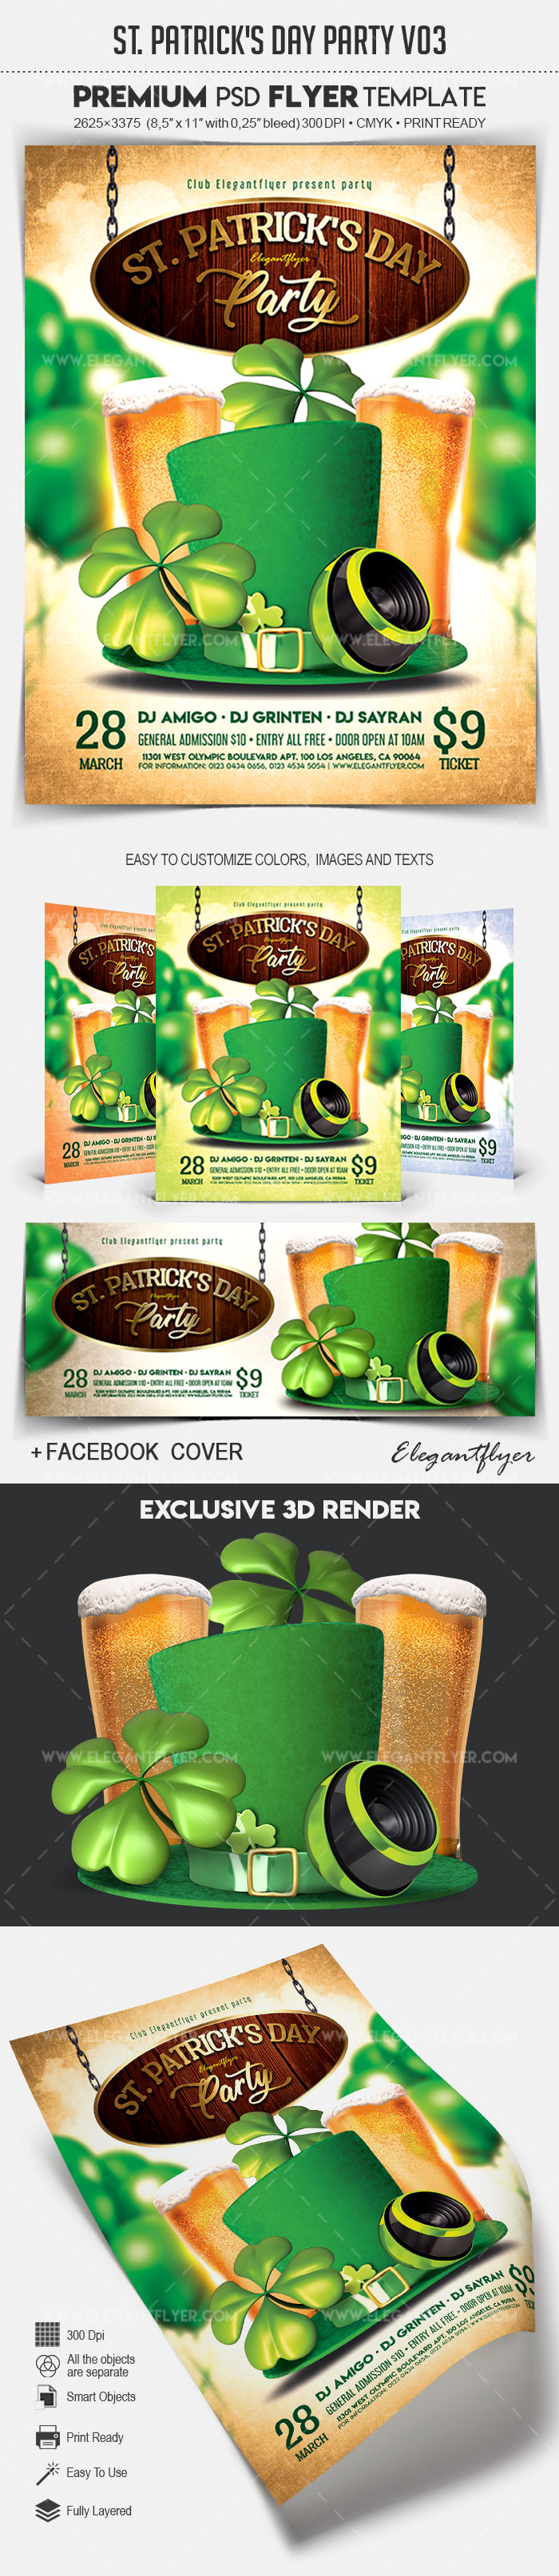 St. Patrick's Day Party V03 – Flyer PSD Template + Facebook Cover